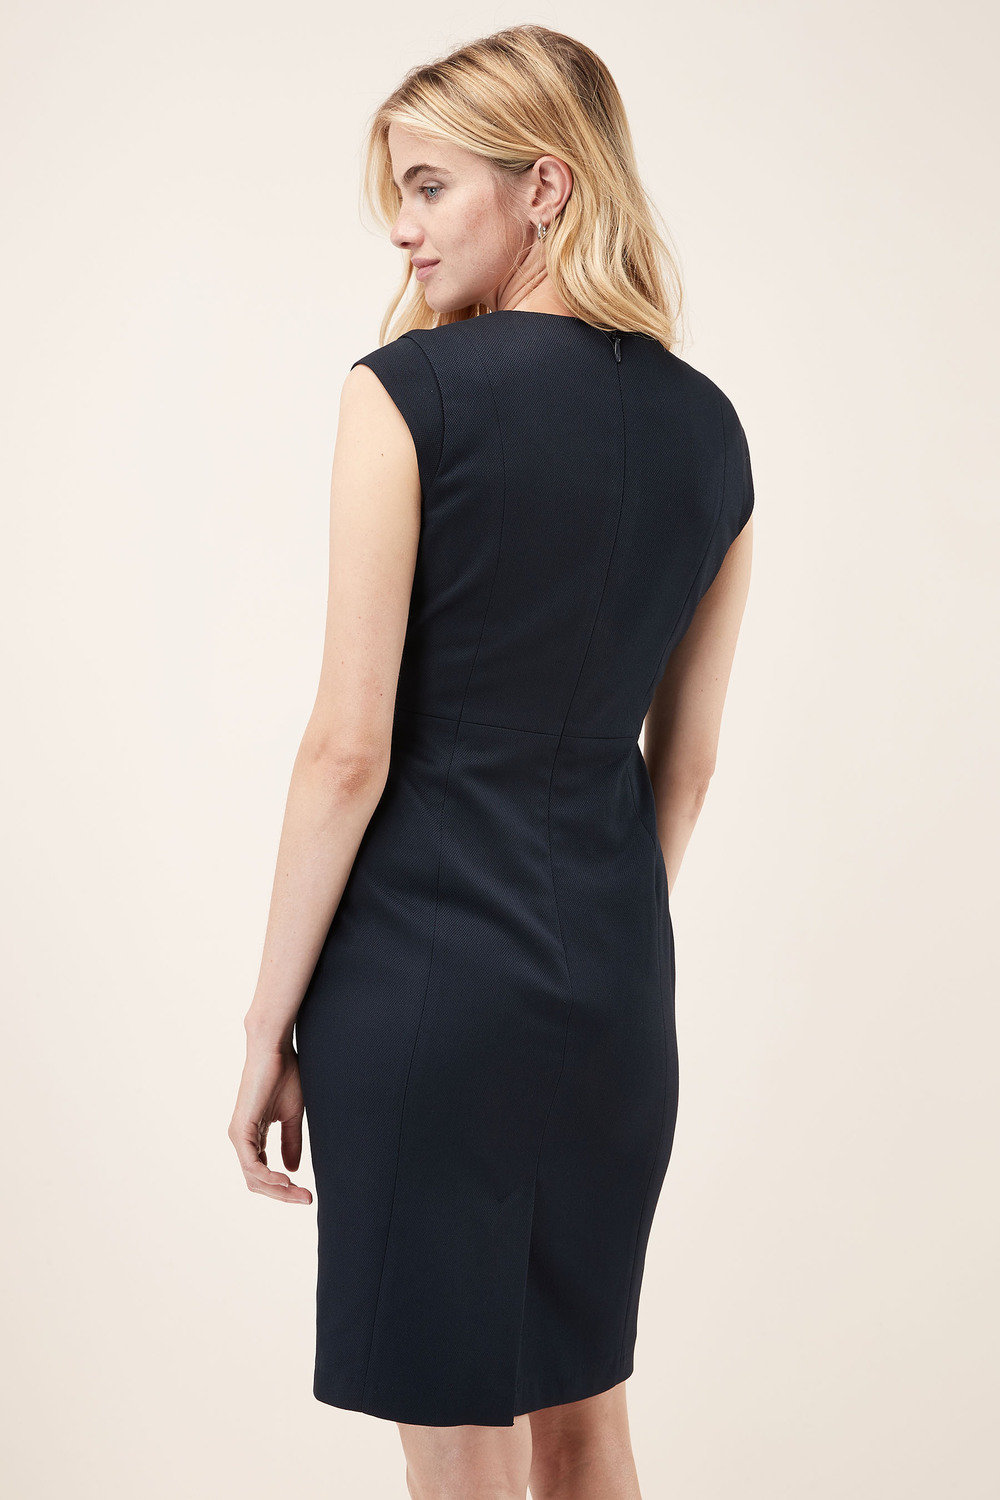 cf74c2bac8 Next Panelled Workwear Dress Online